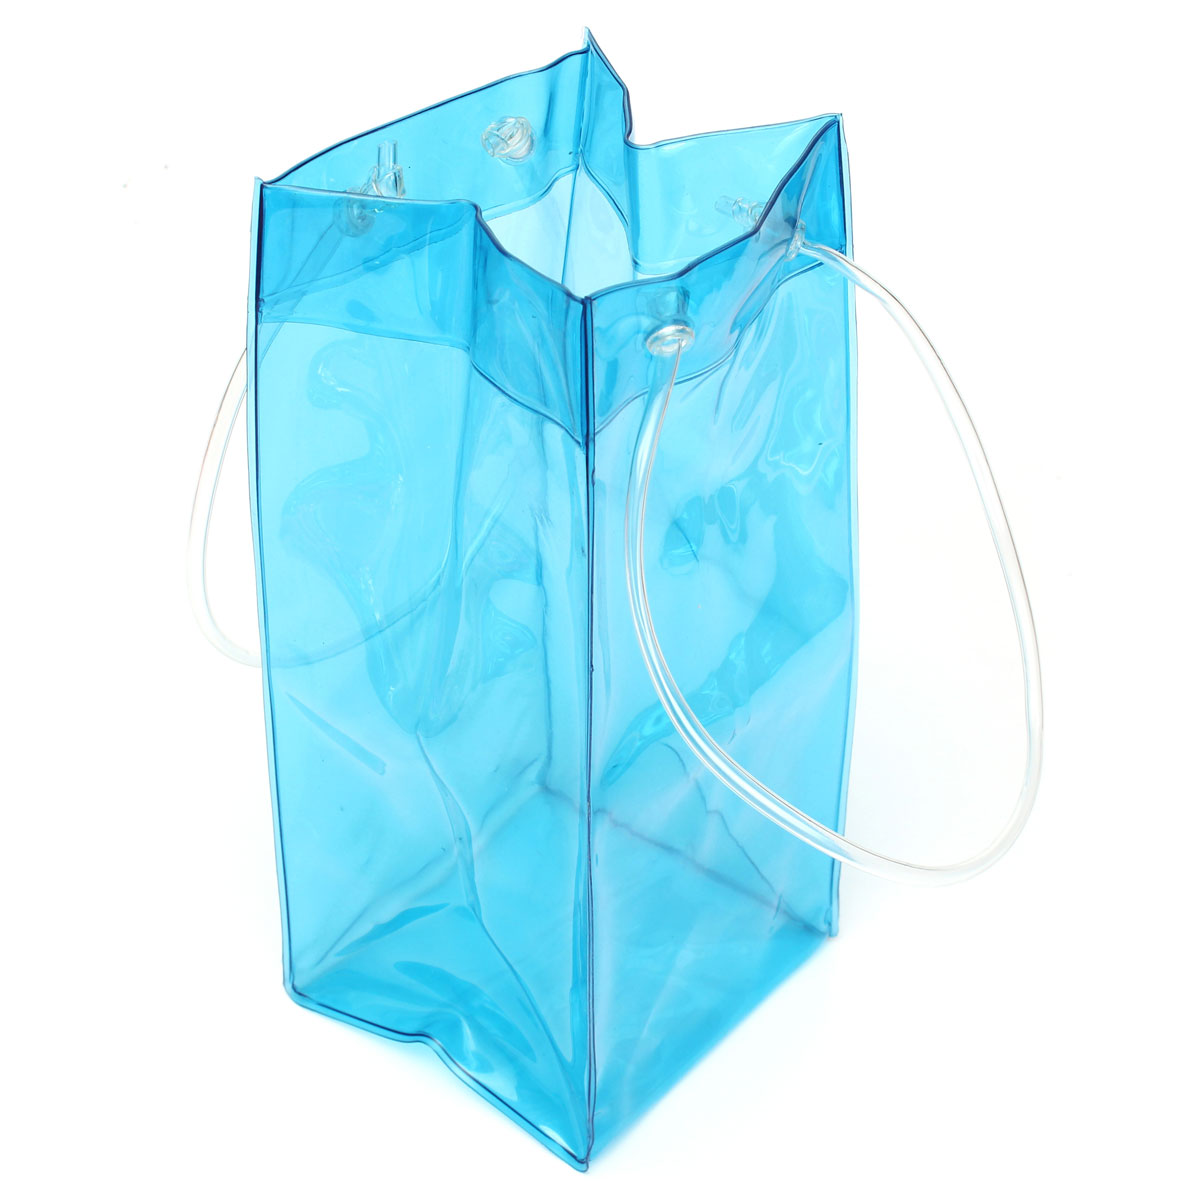 PVC Wine Beer Champagne Drink Cooler Chiller Drink Pouch Wine Bottle Ice Bag Bucket For Parties Random Color Practical Outdoor